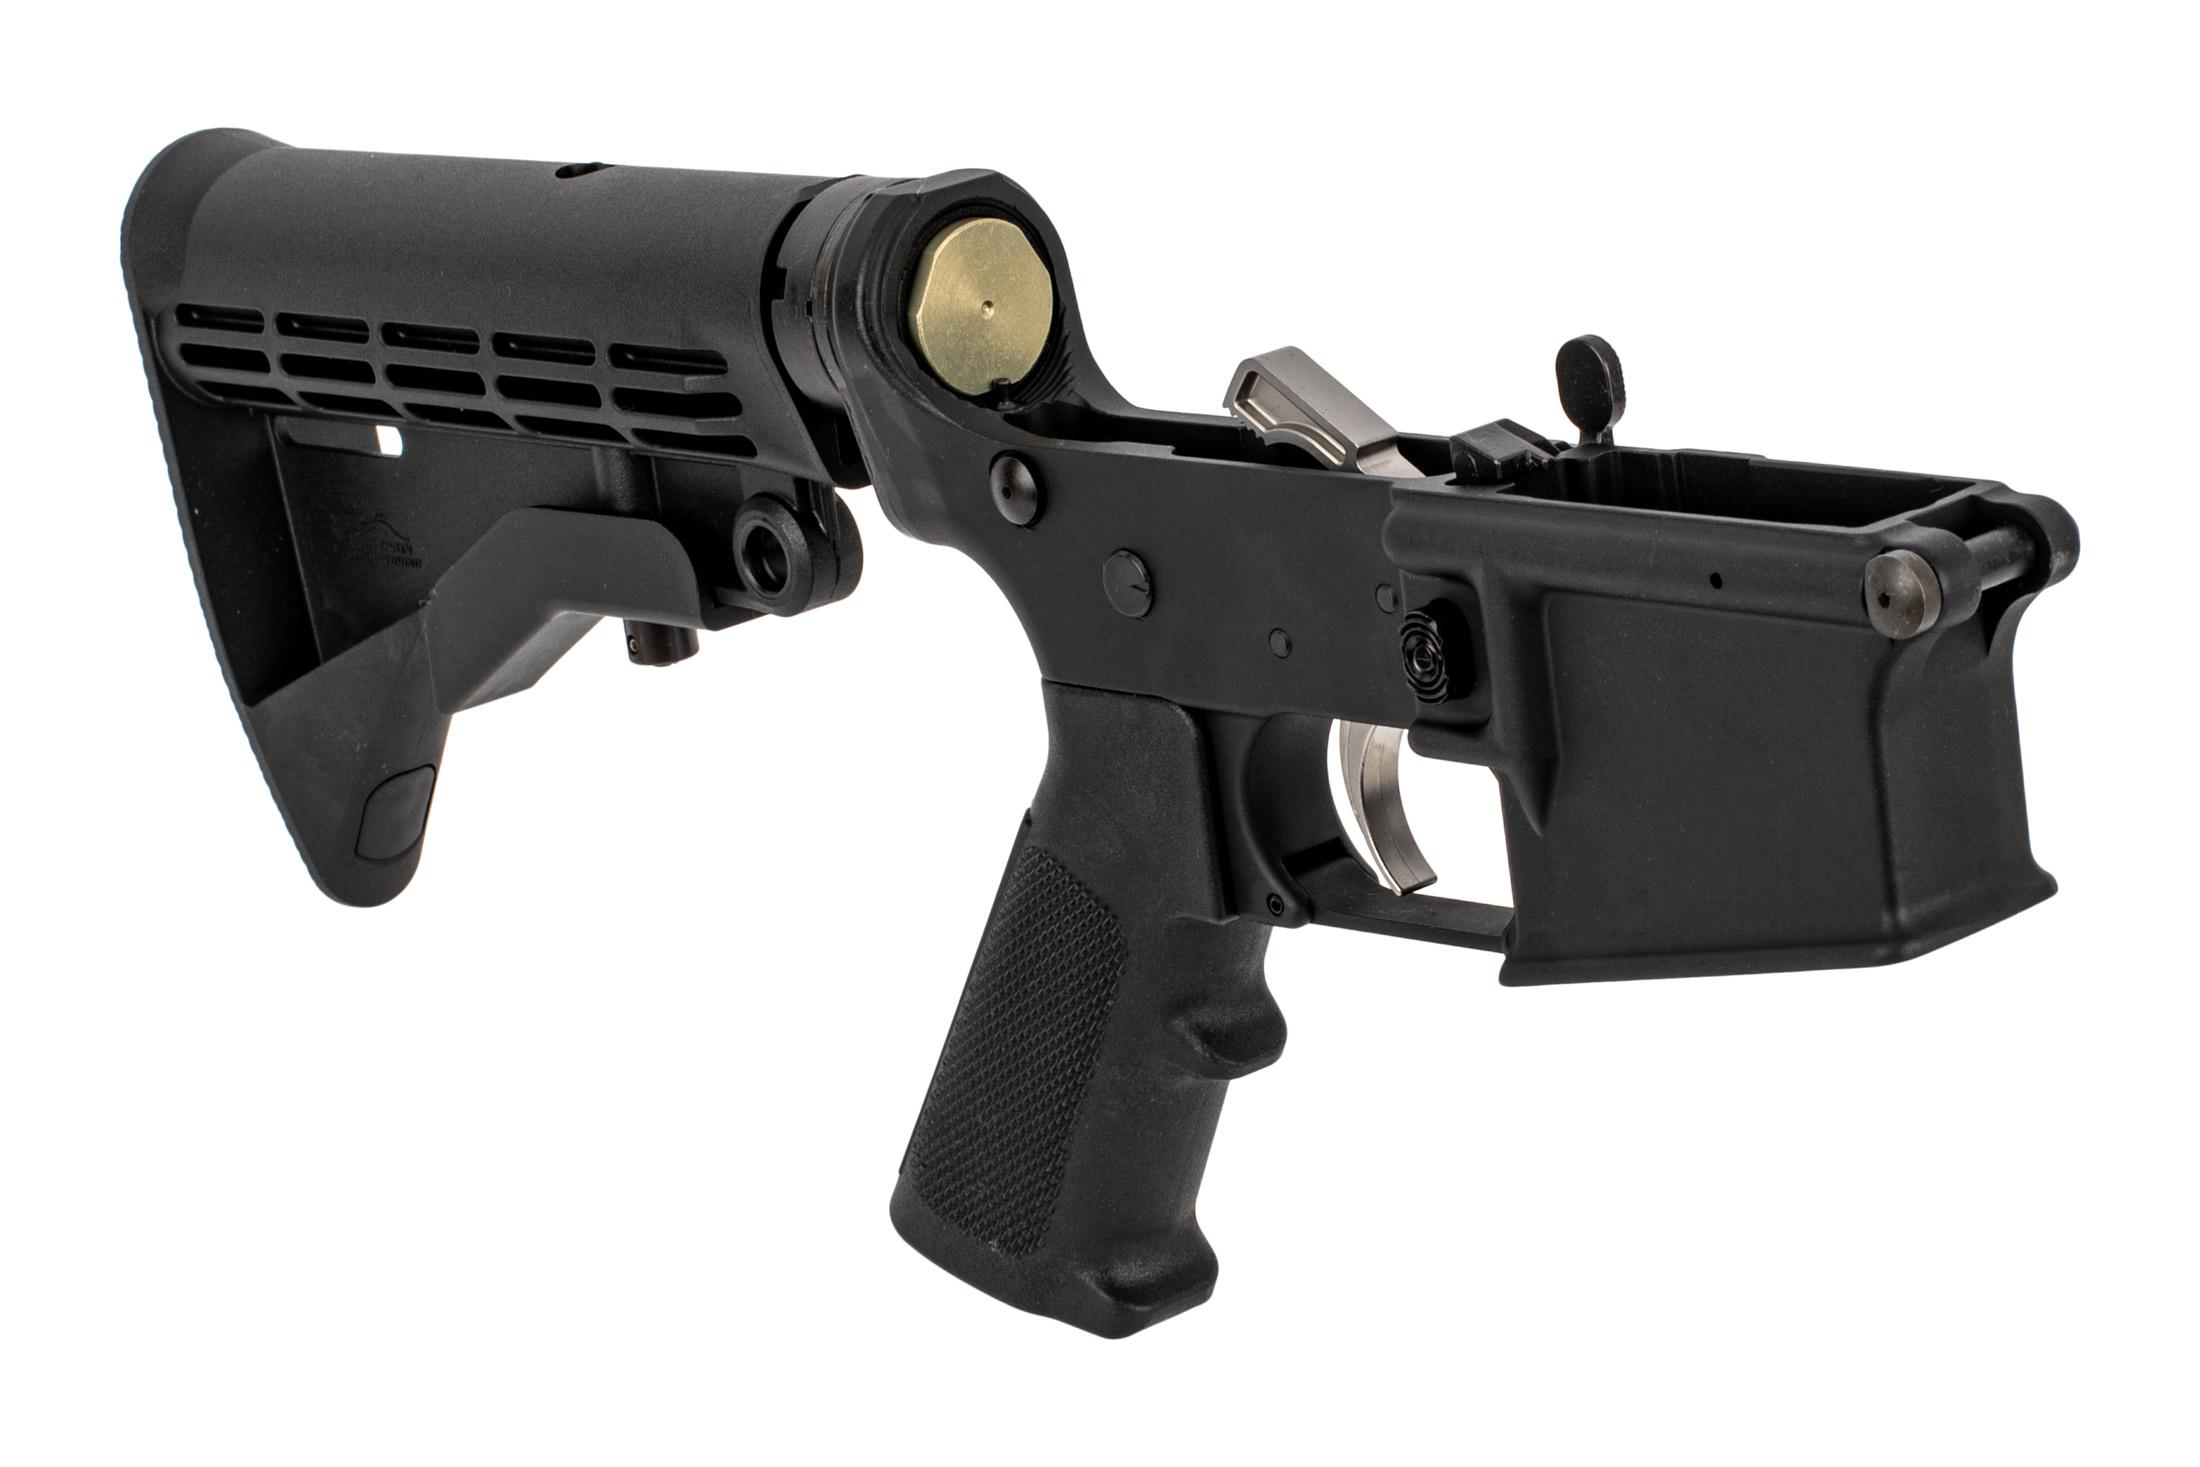 Anderson Manufacturing complete AM-15 lower receiver features a stainless steel trigger, M4 carbine stock, and carbine buffer